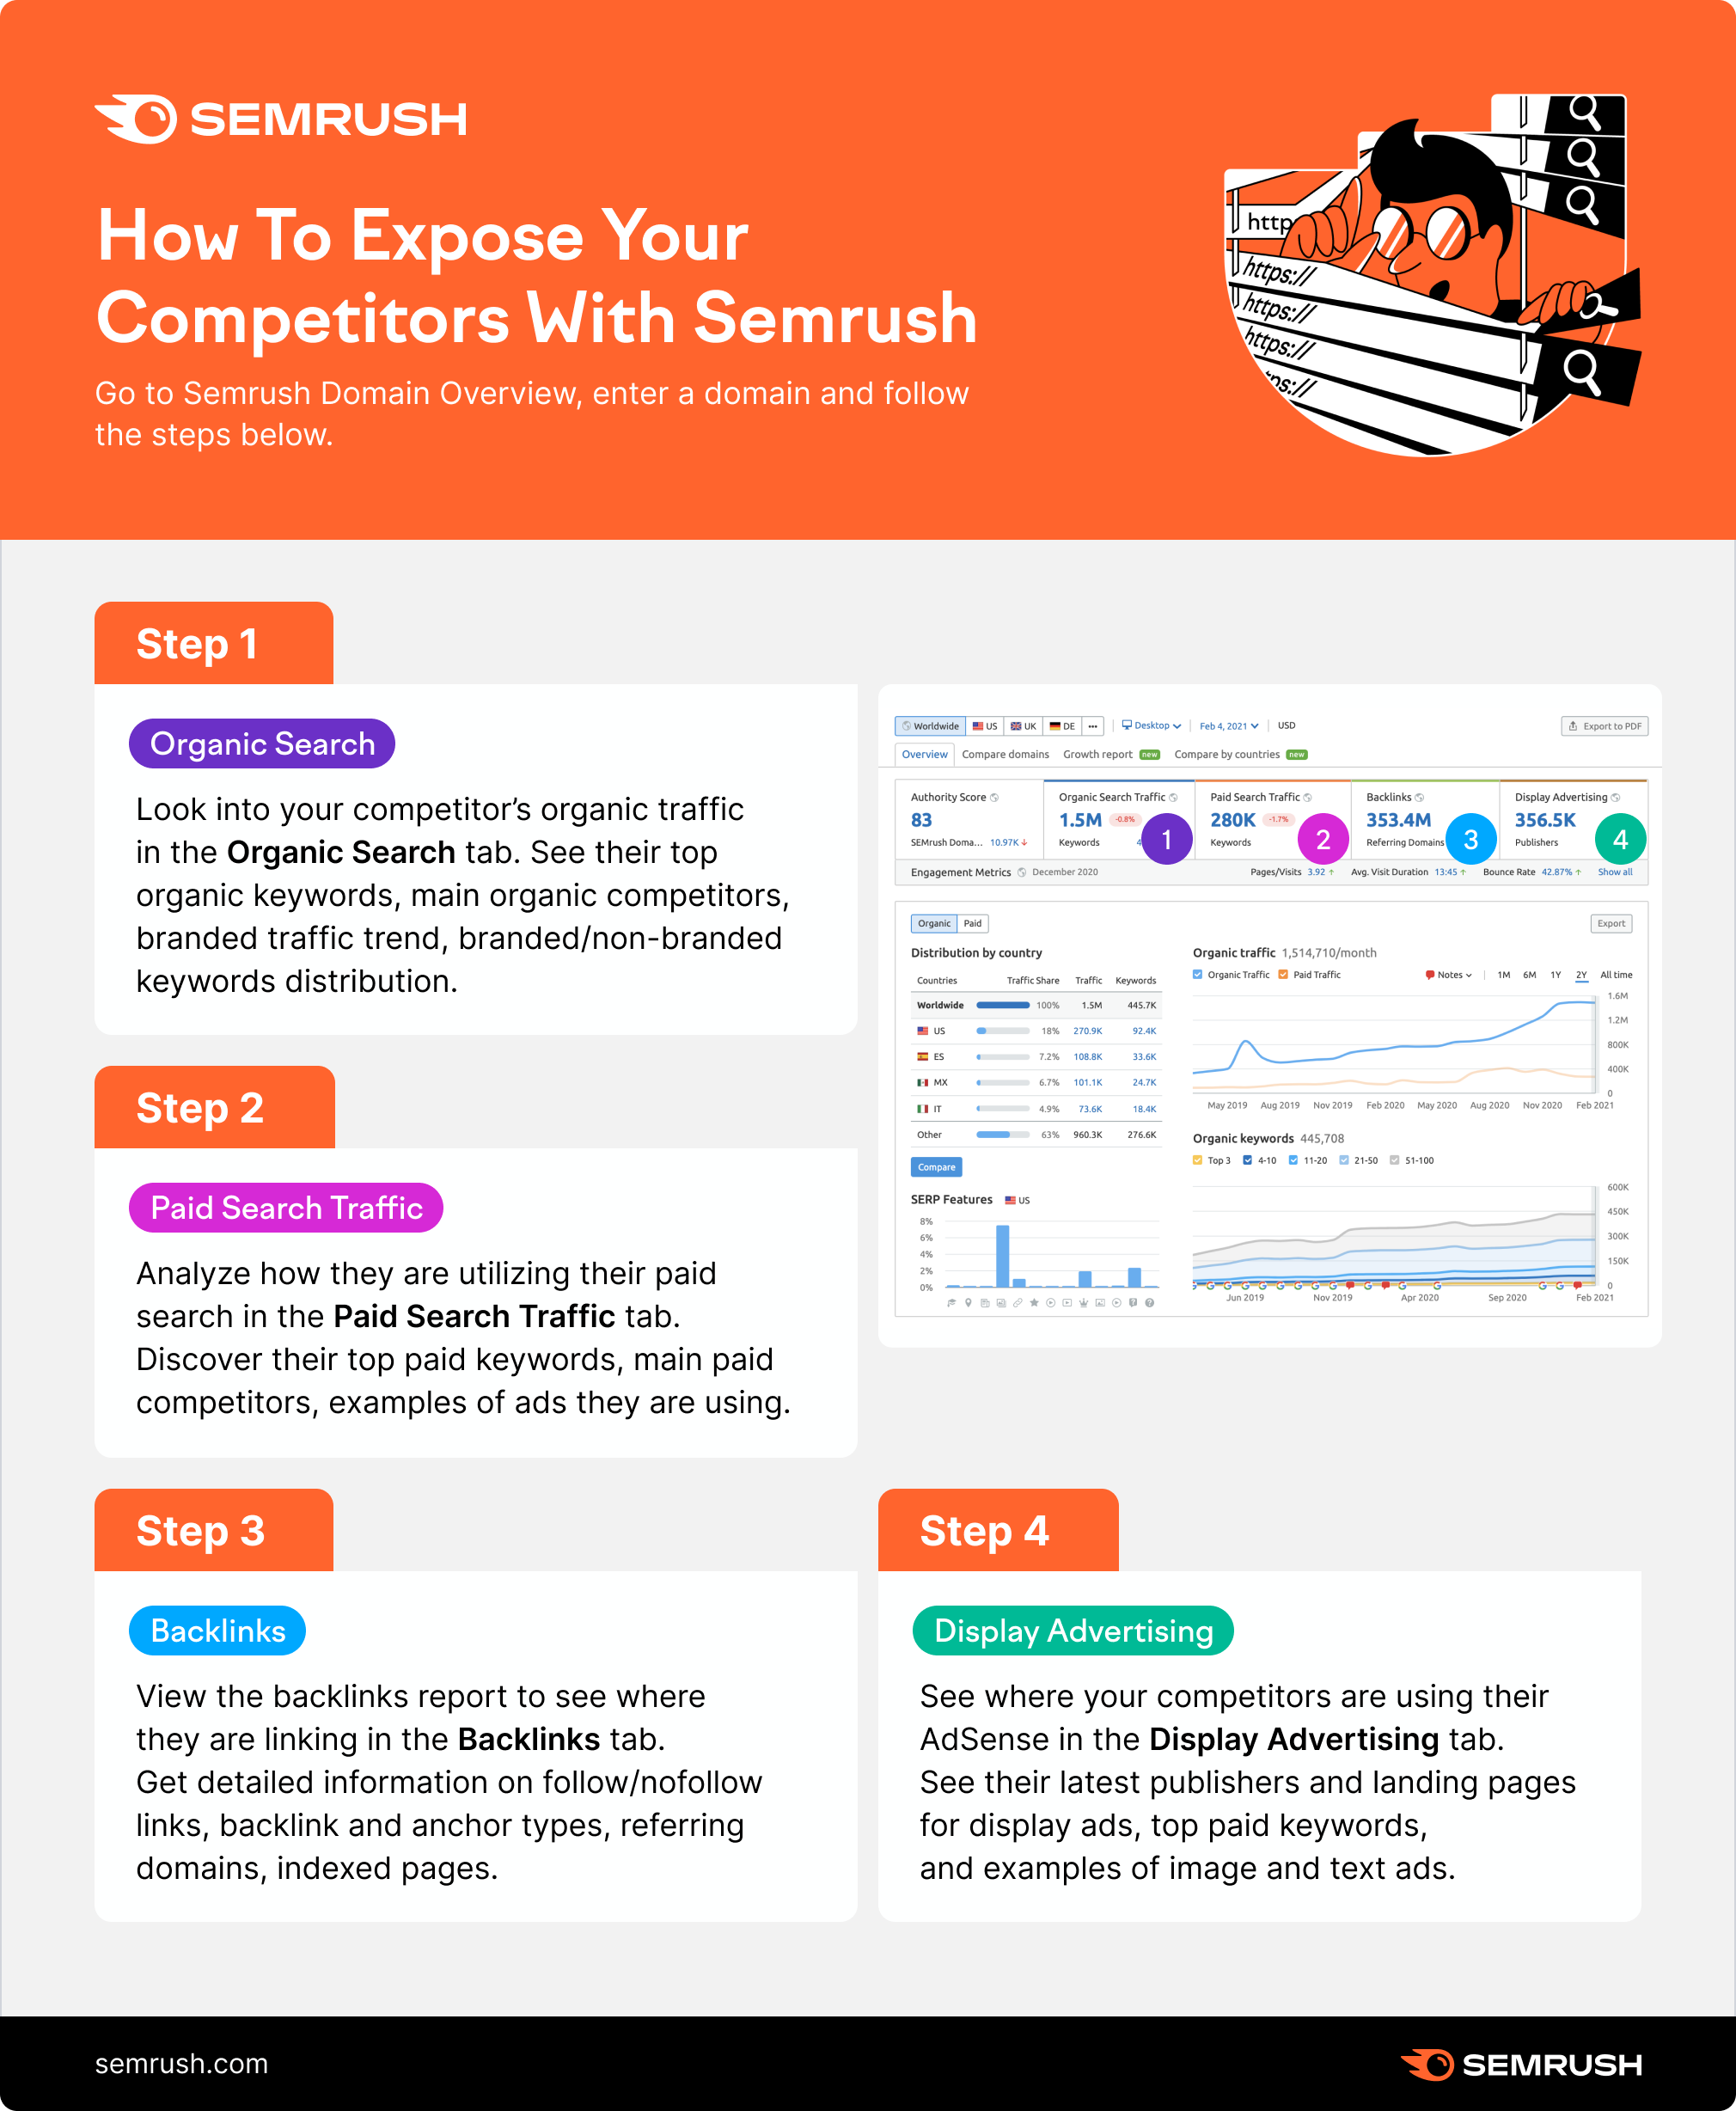 Exposing competitors with Semrush Domain Overview